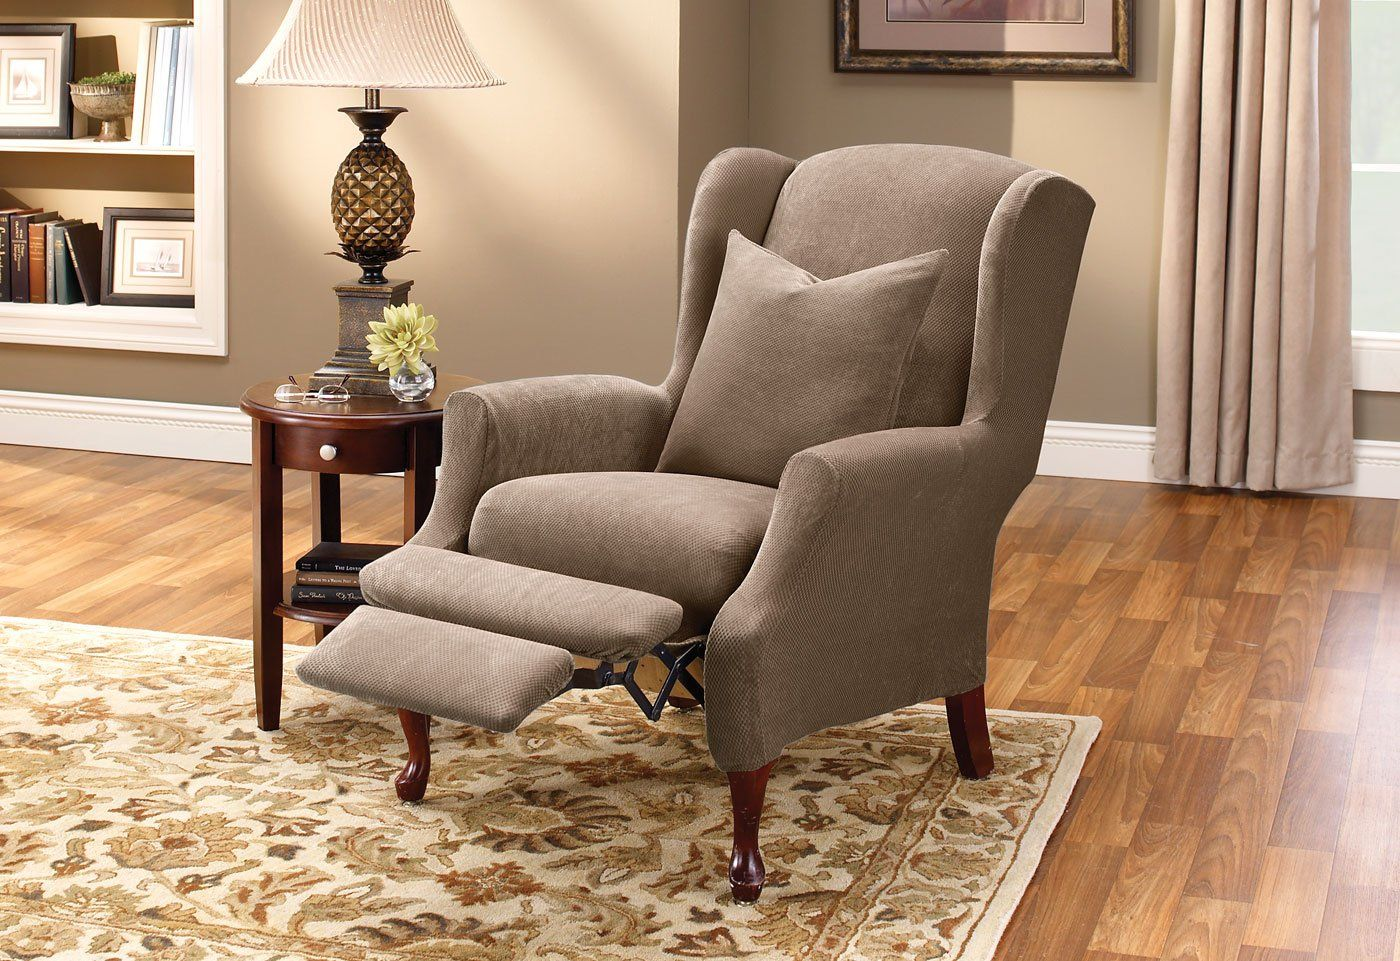 Stretch Pique Two Piece Wing Recliner Slipcover Form Fit Machine Washable In 2020 Slipcovers For Chairs Recliner Slipcover Slipcovers